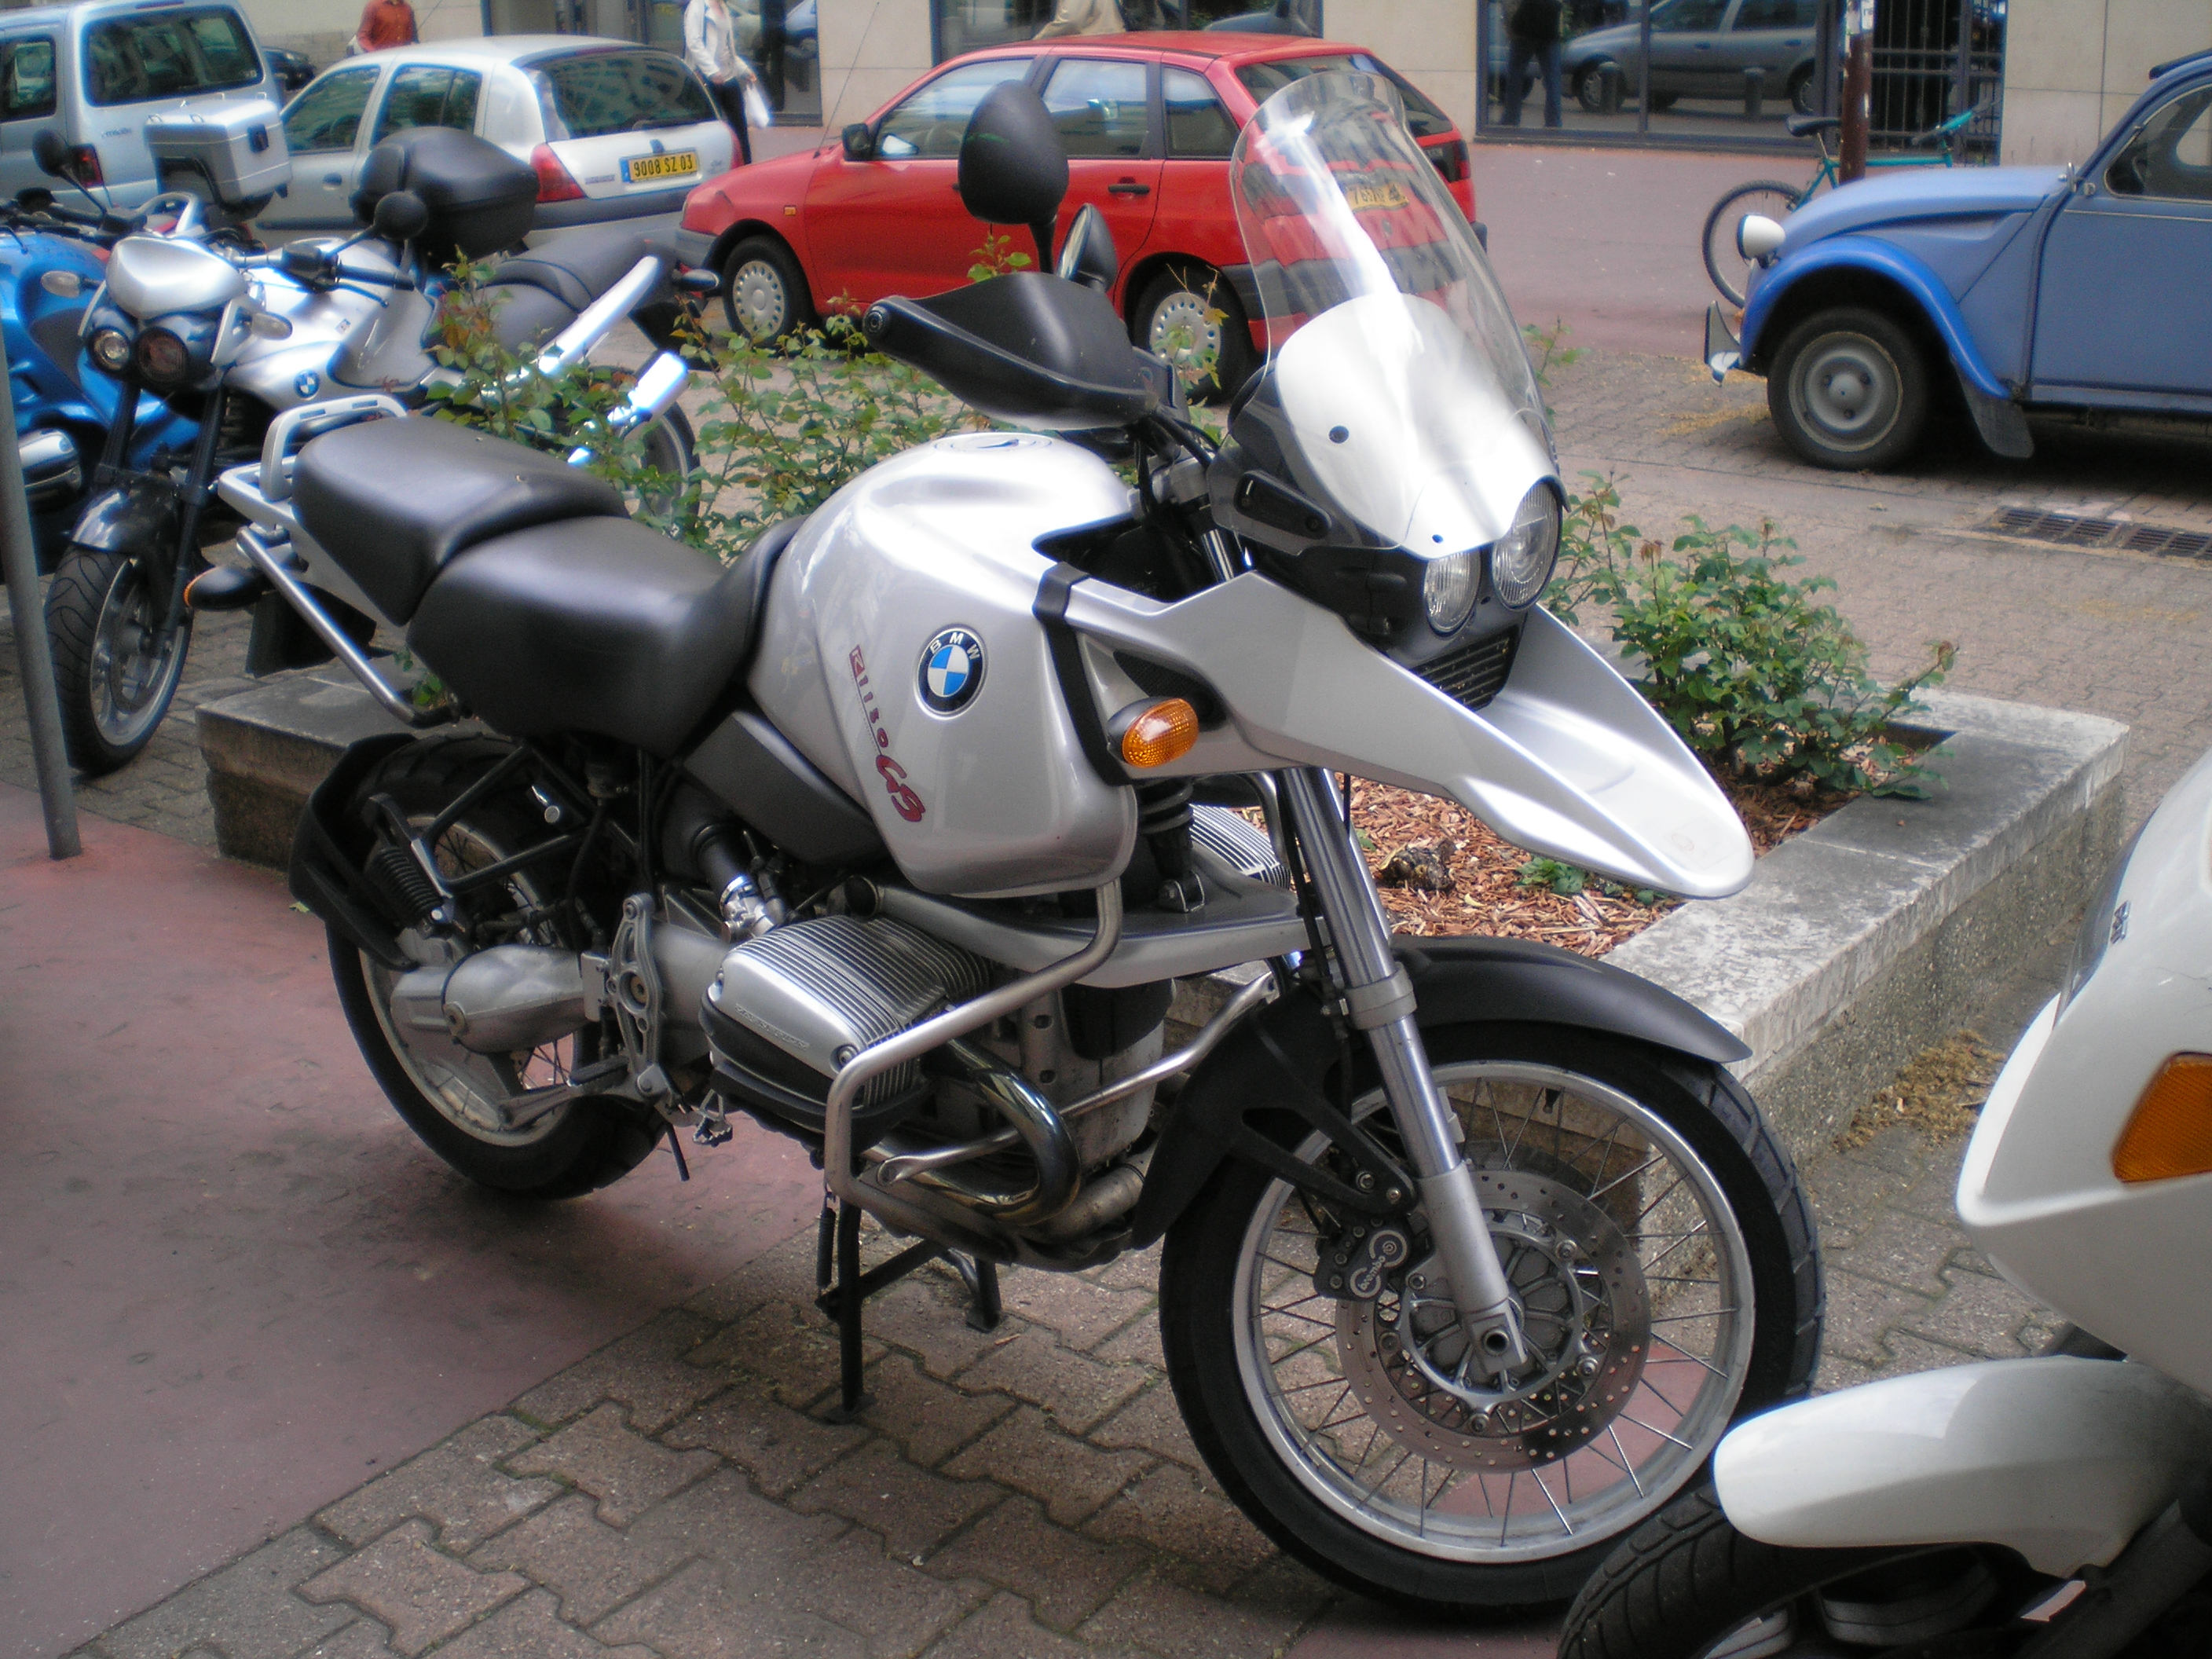 BMW R850GS 1997 images #77611